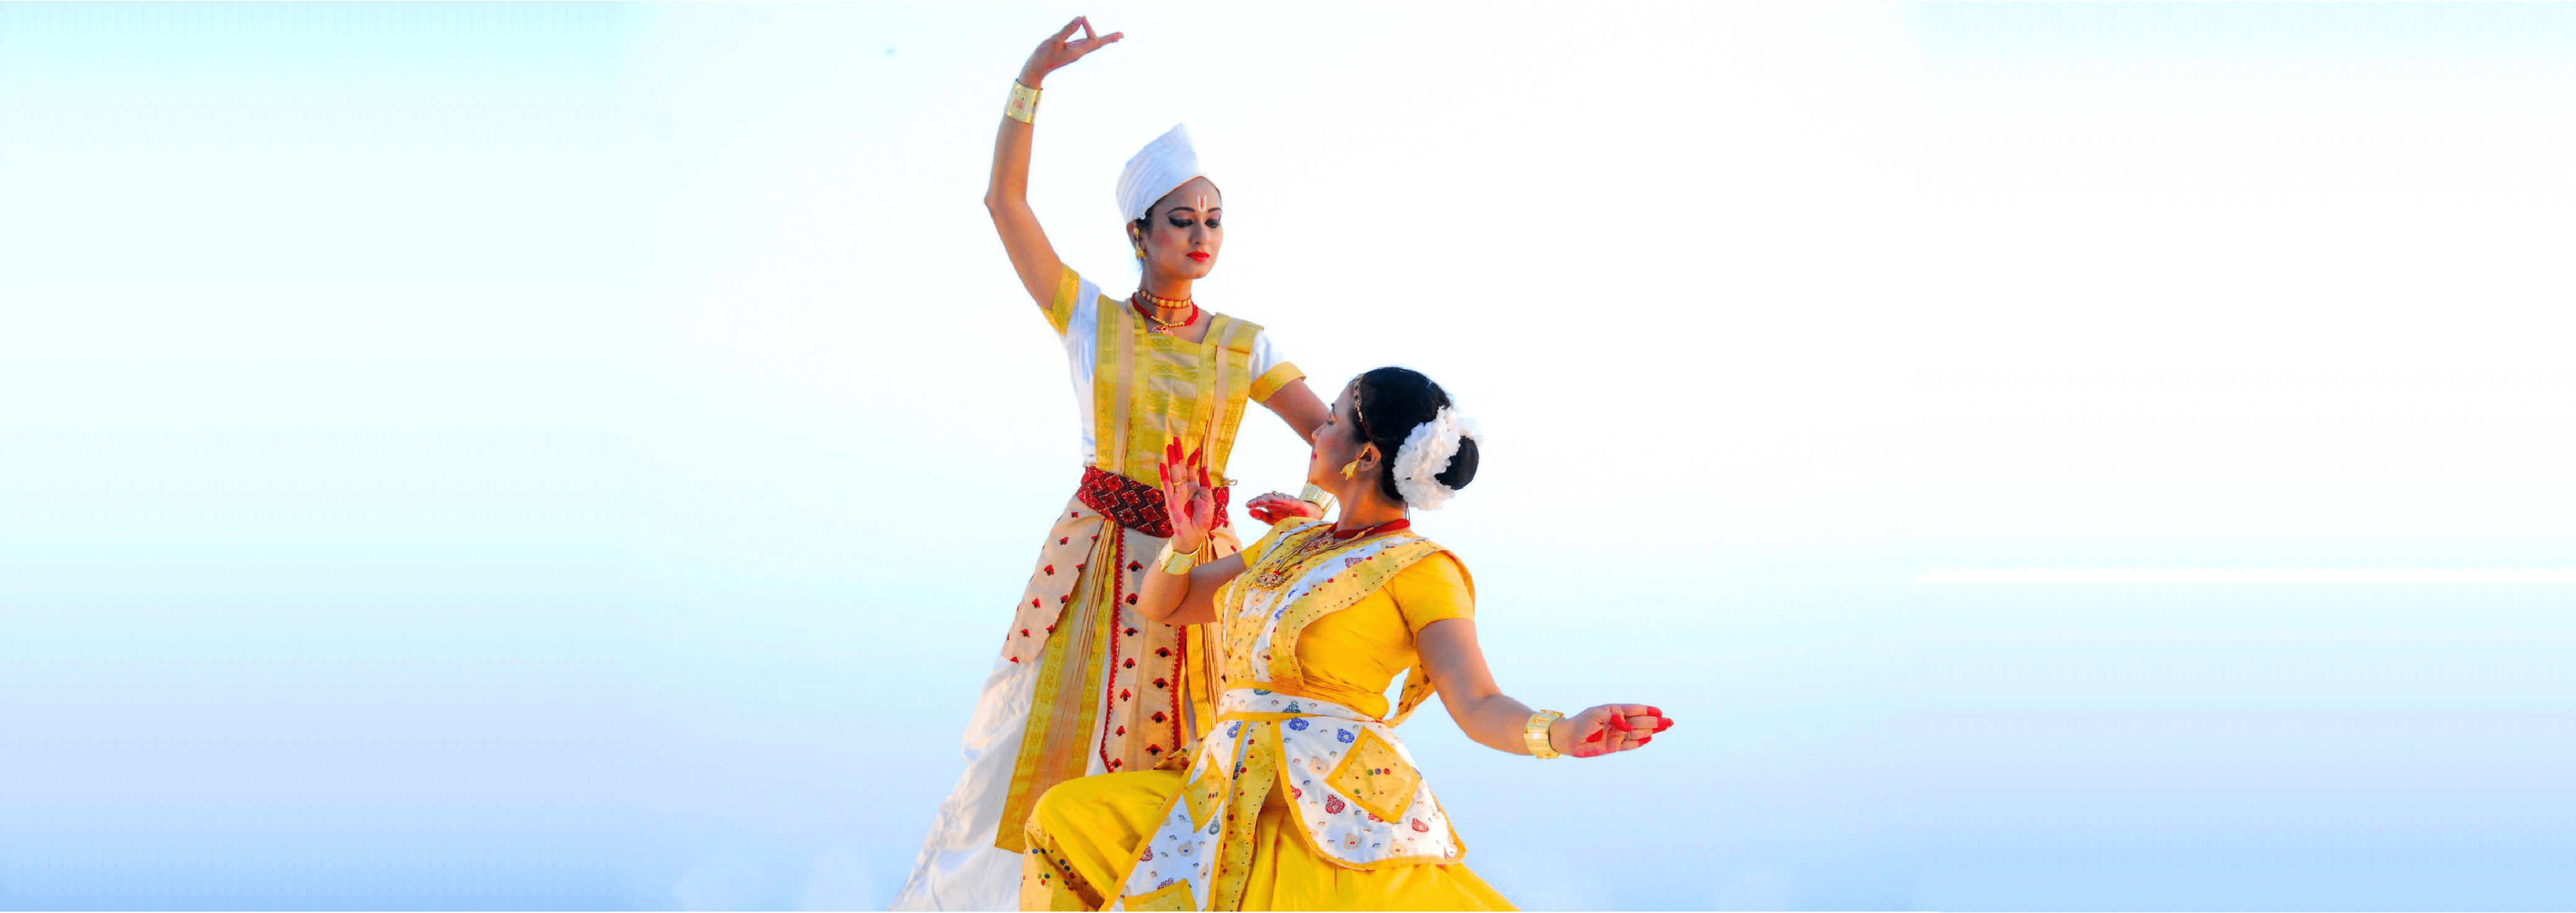 Madhusmita and Prerona performing Sattriya at Battery dance festival